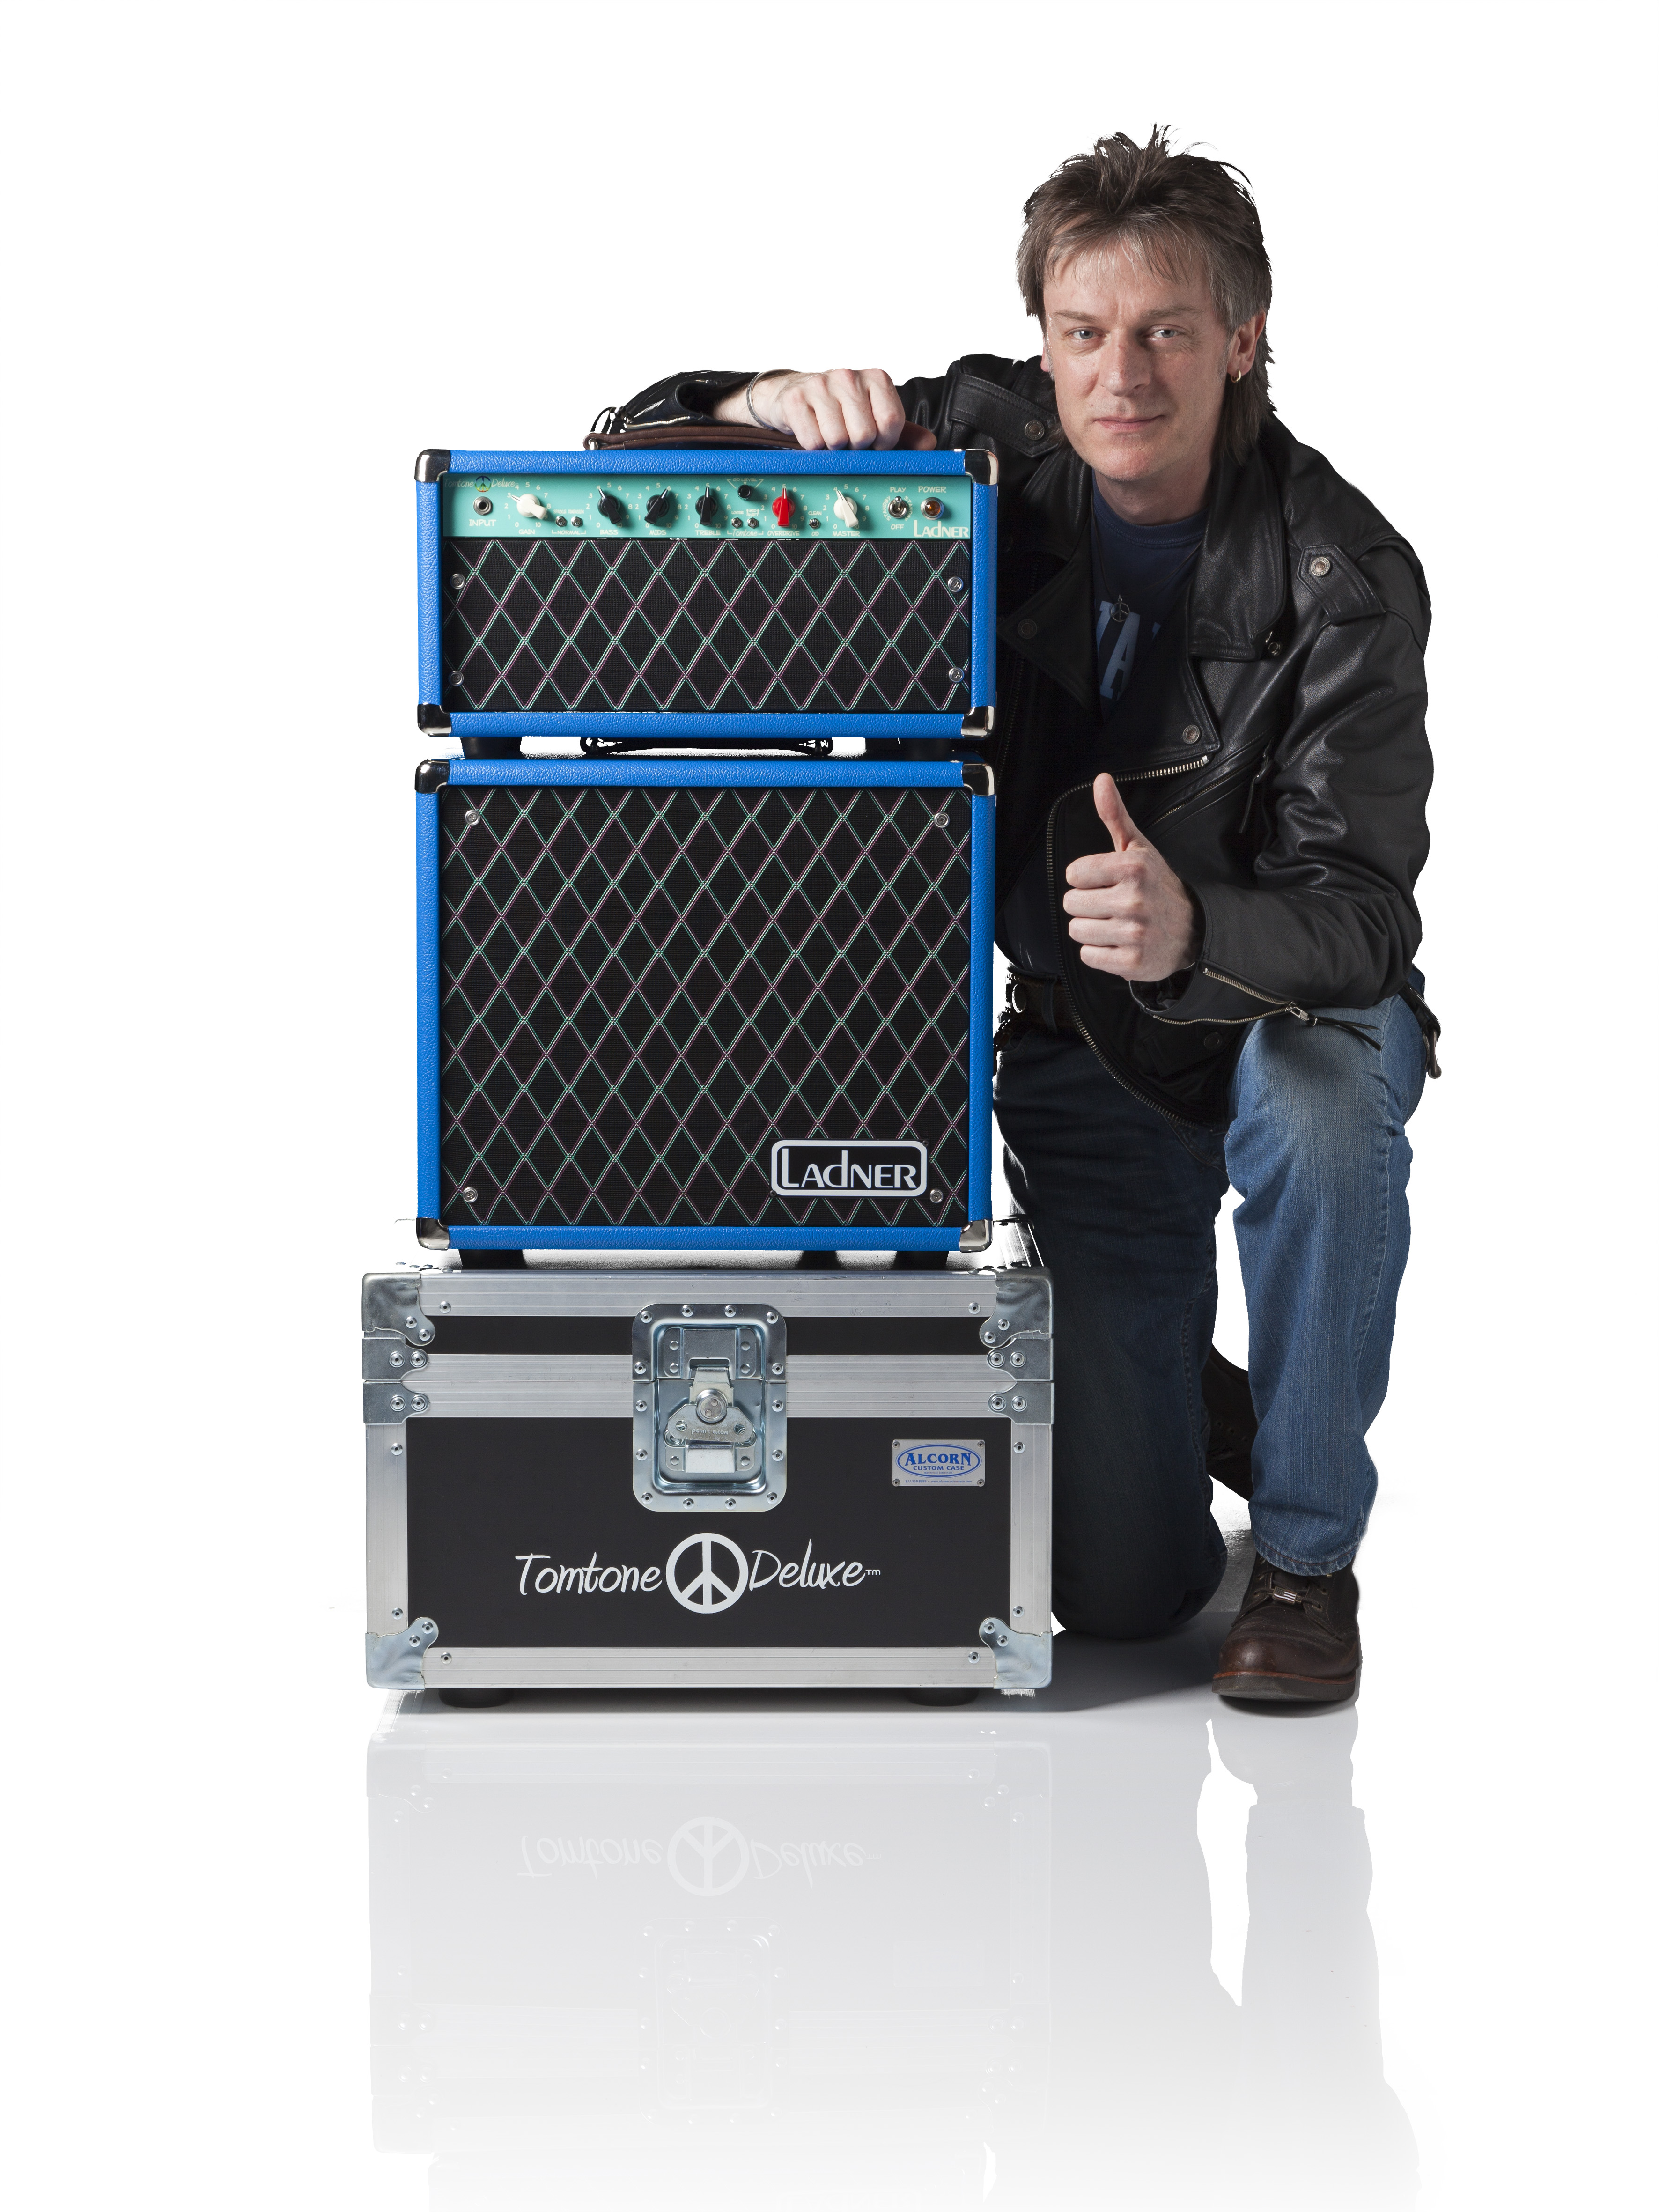 Press Photo Ladner Tomtone Deluxe™ Tom Riepl Signature Amplifier